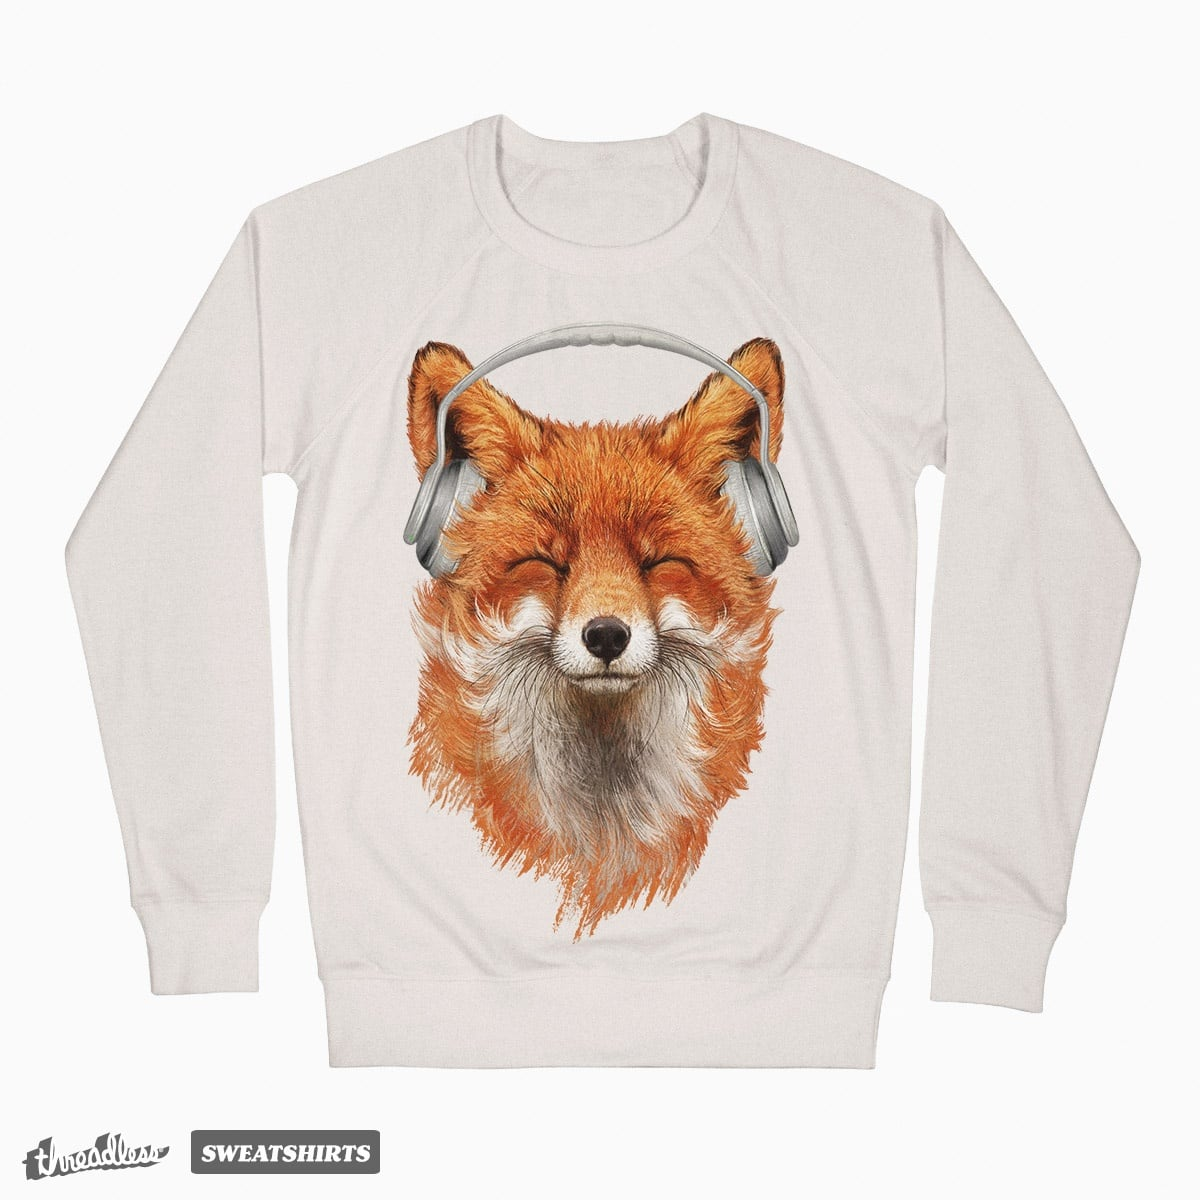 The Musical Fox by 38Sunsets on Threadless